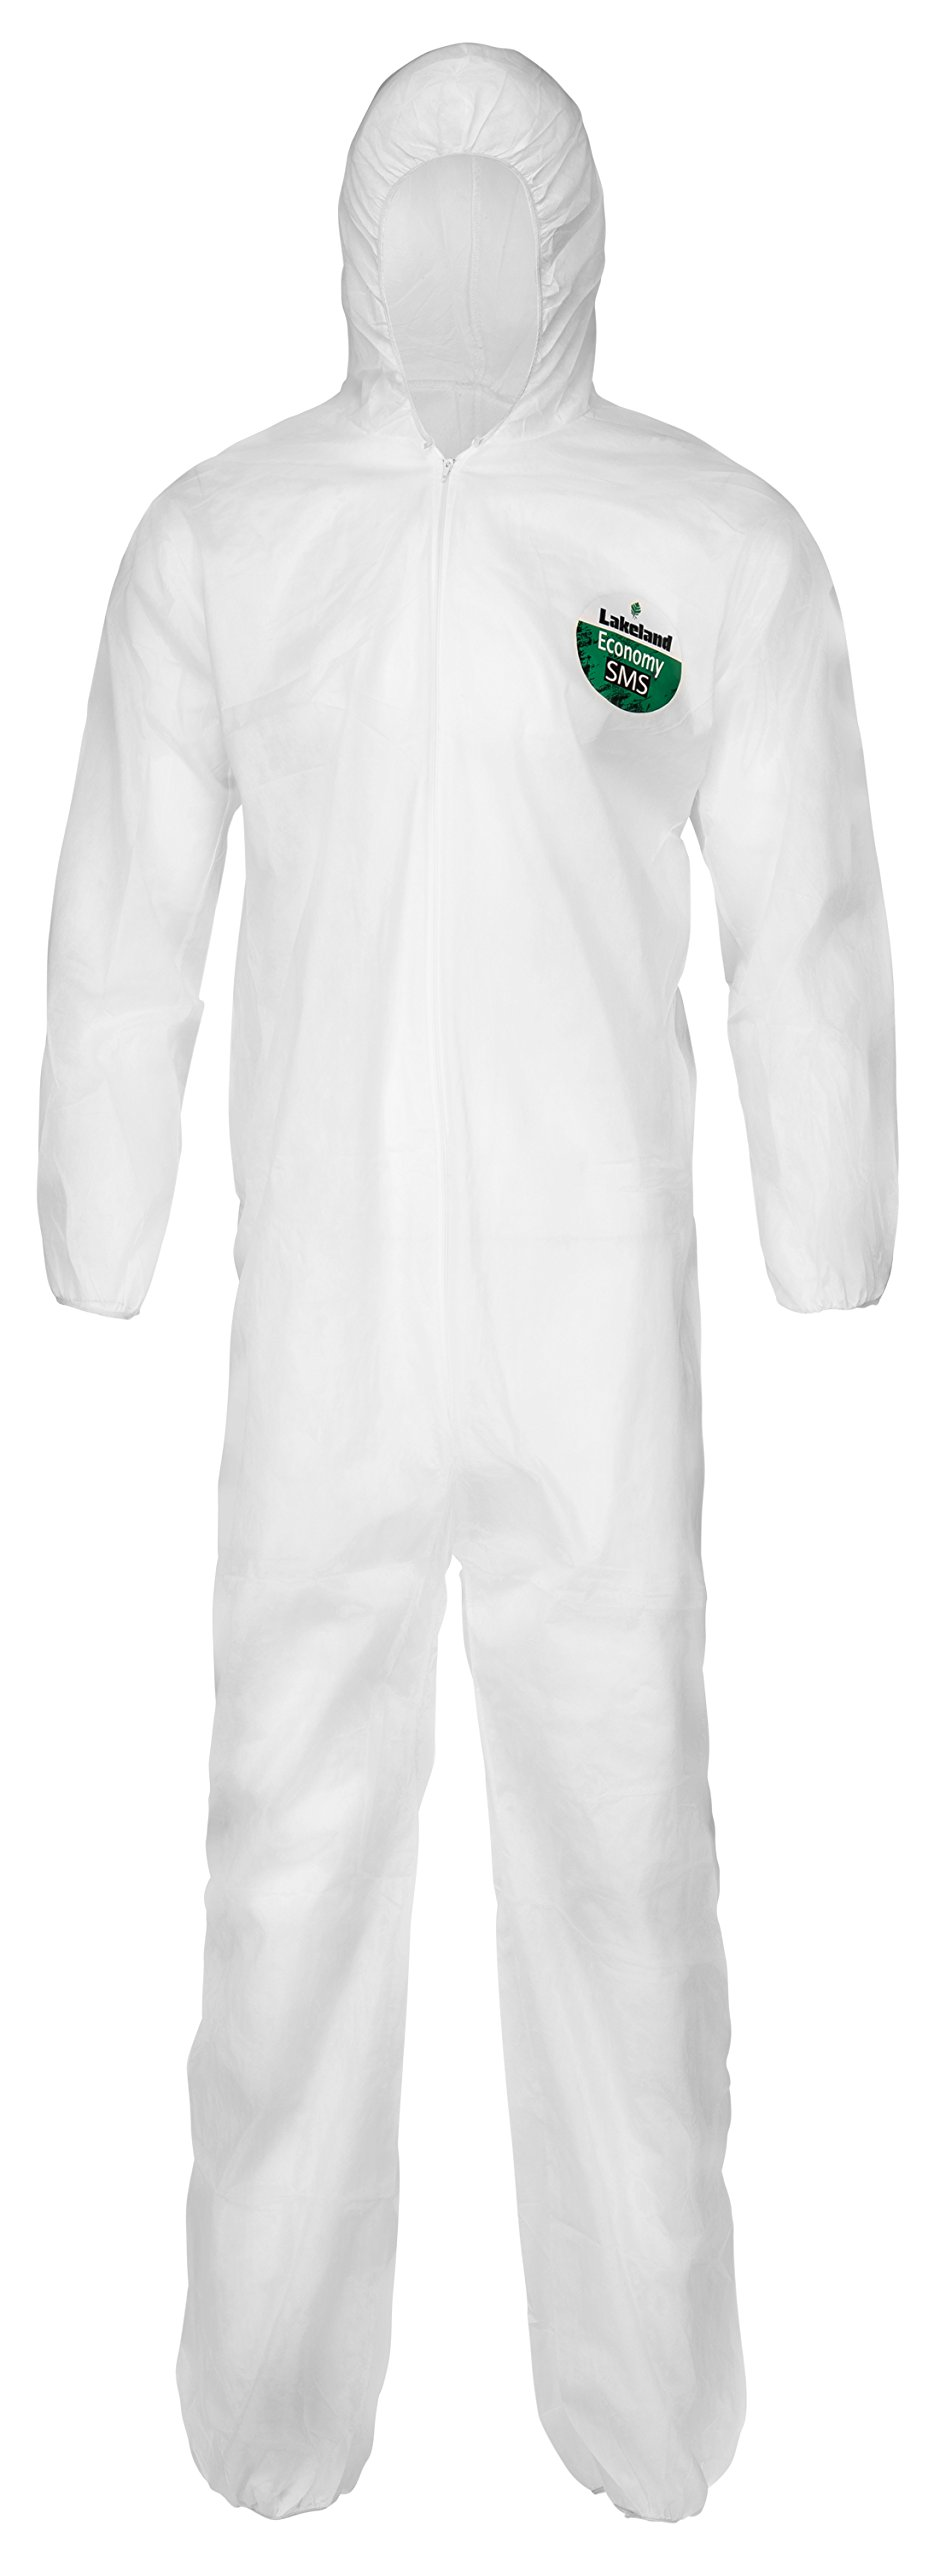 Lakeland SafeGard Economy SMS Coverall with Hood, Disposable, Elastic Cuff, X-Large, White (Case of 25)